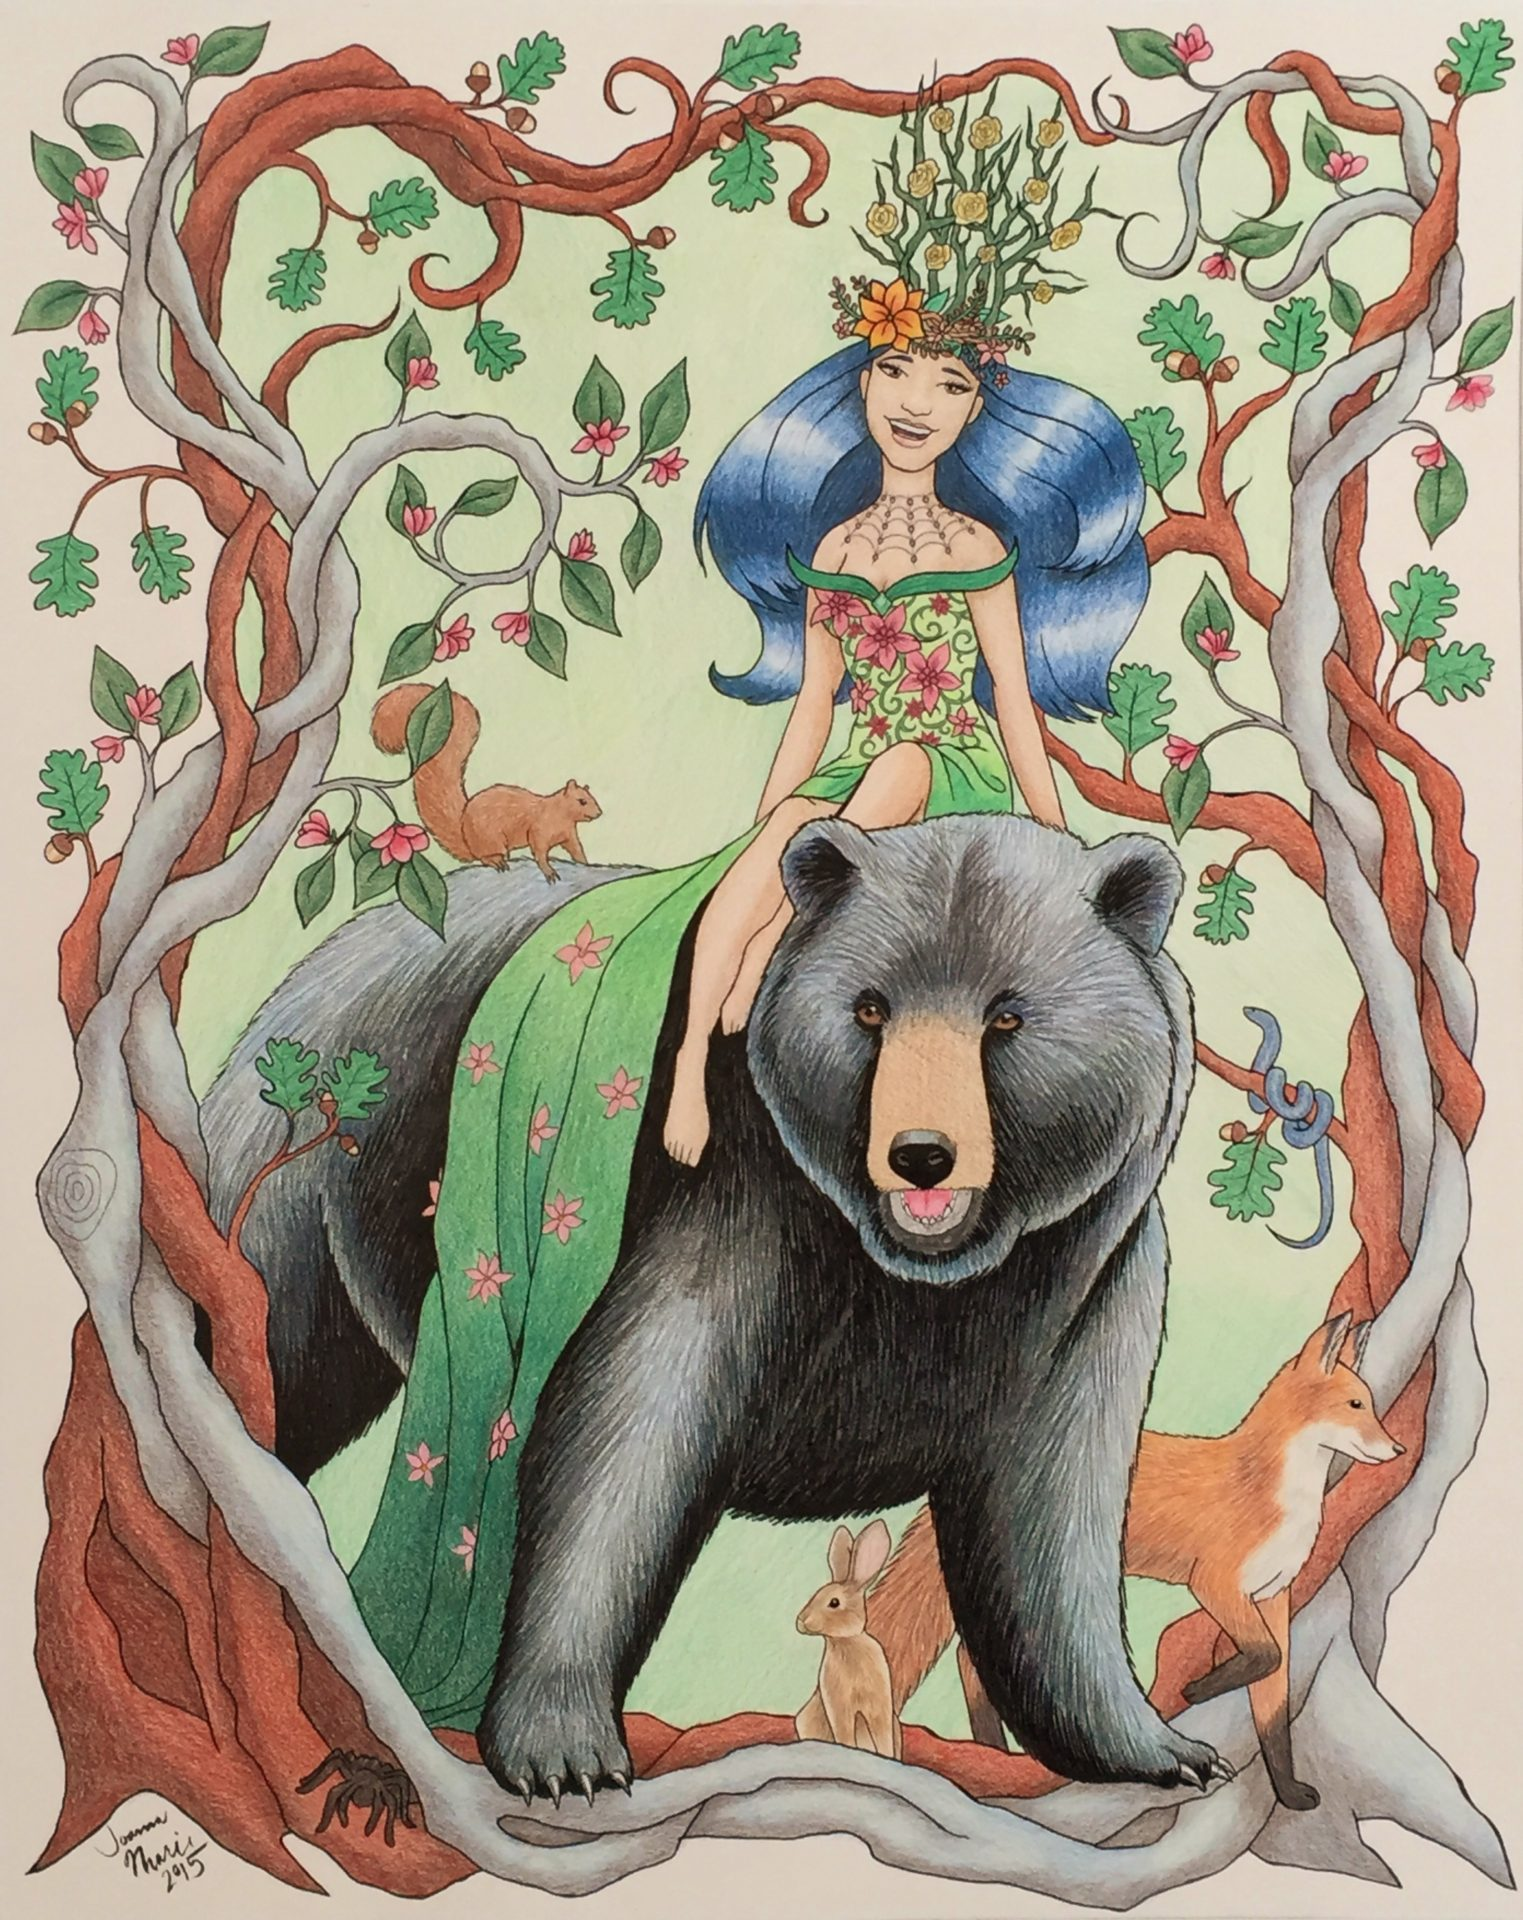 Queen of the Forest, 2015, 16x20, Colored Pencil